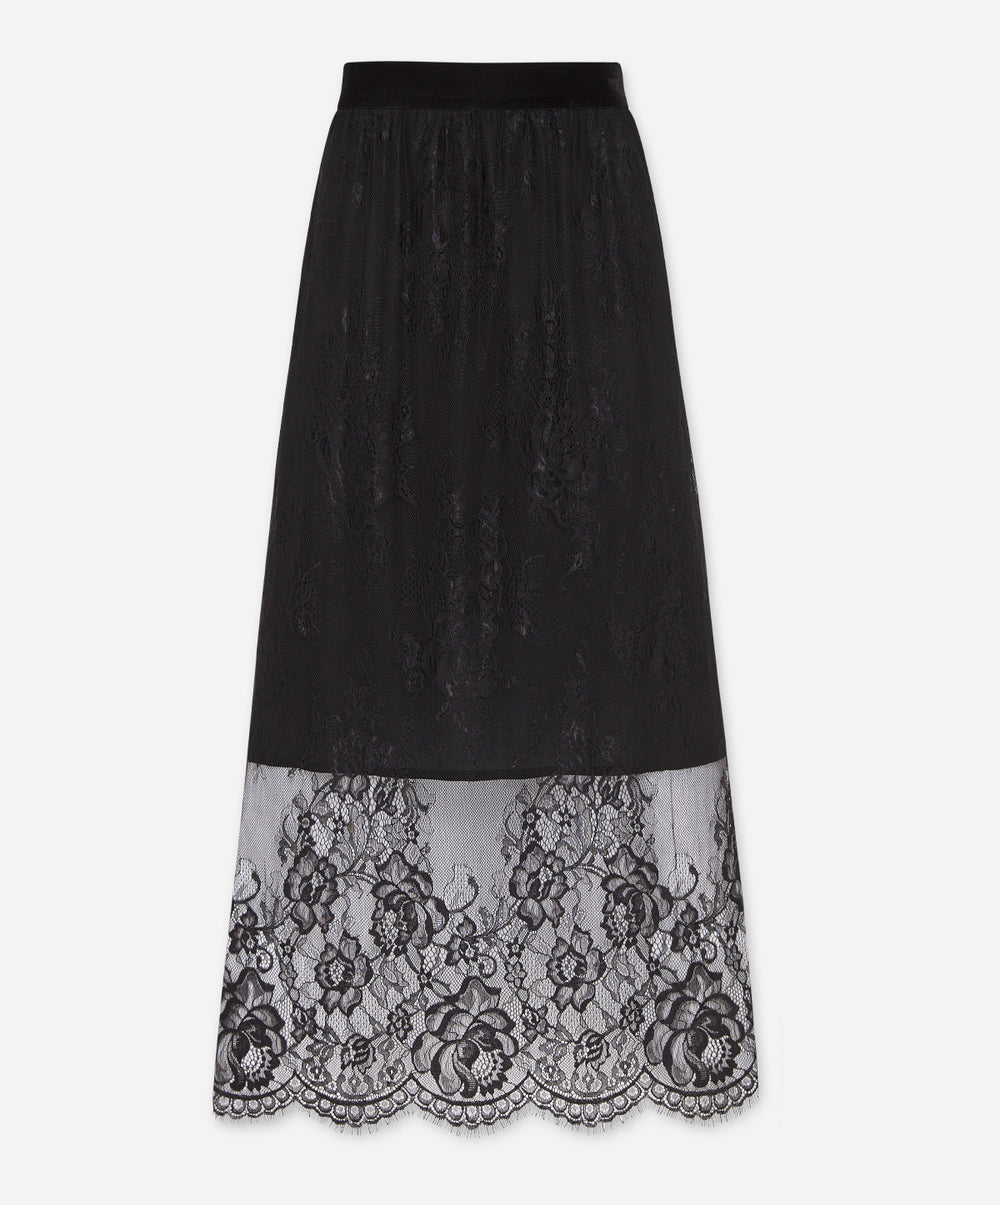 Rennes Lace Skirt